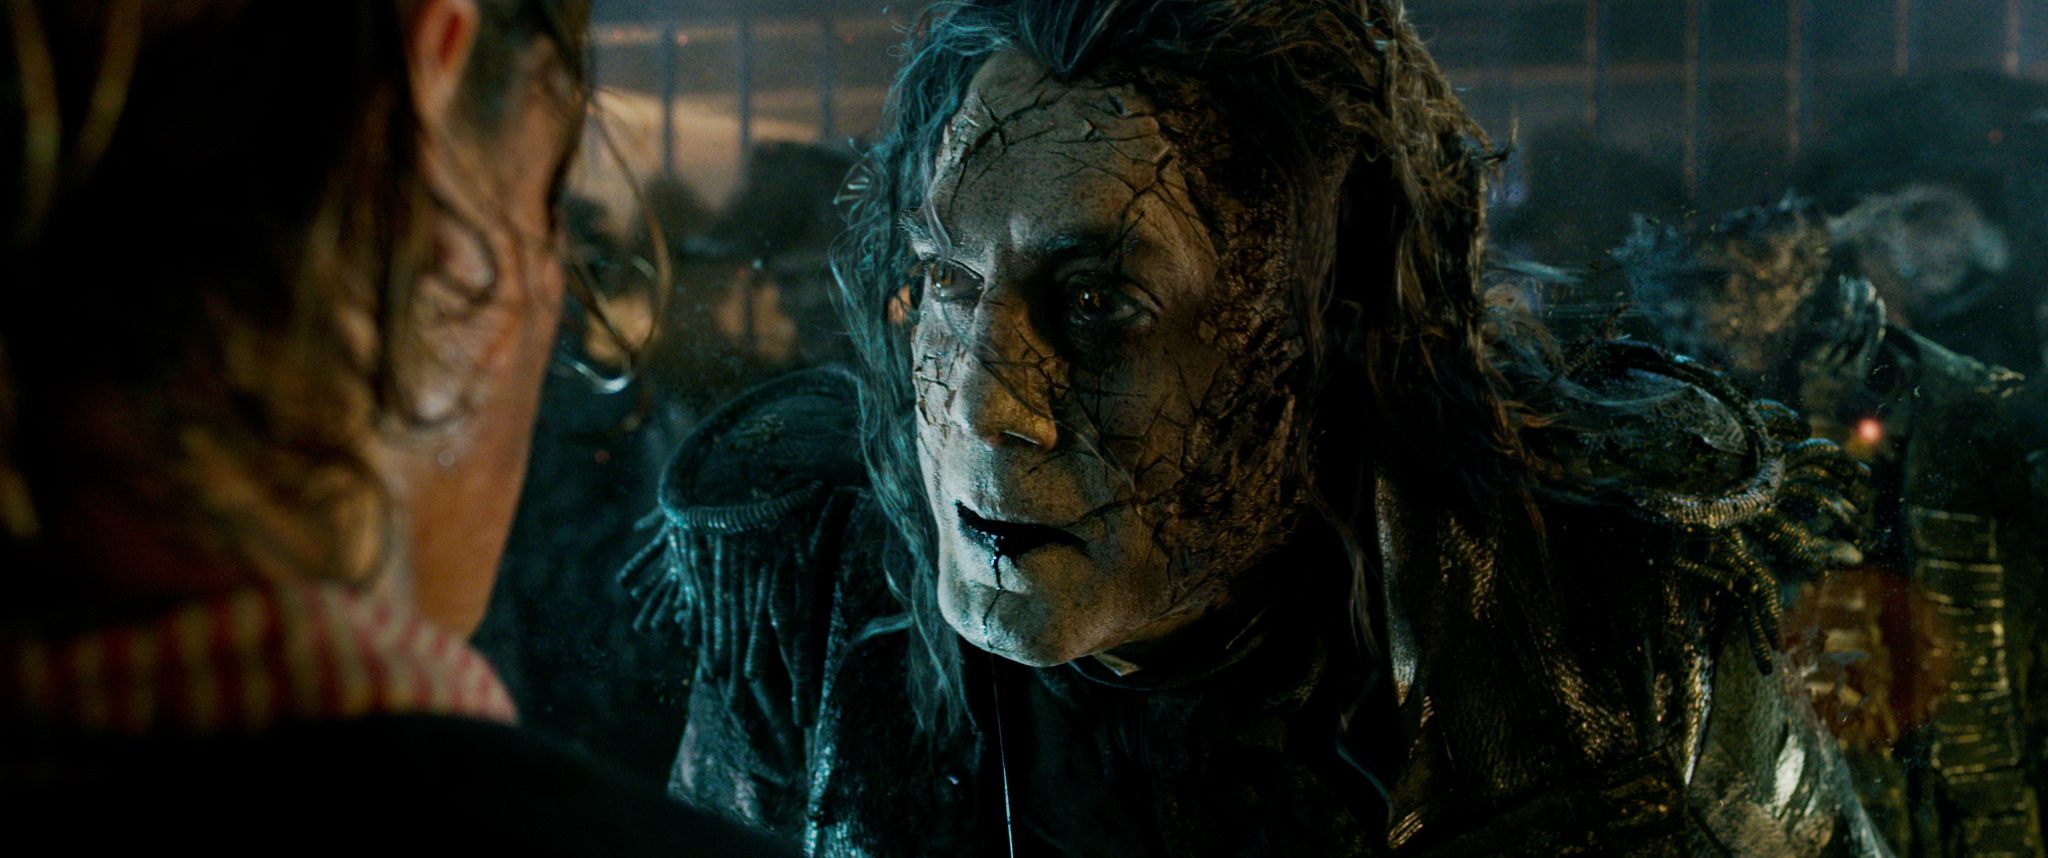 pirates of the caribbean 5 poster lands 2016 images